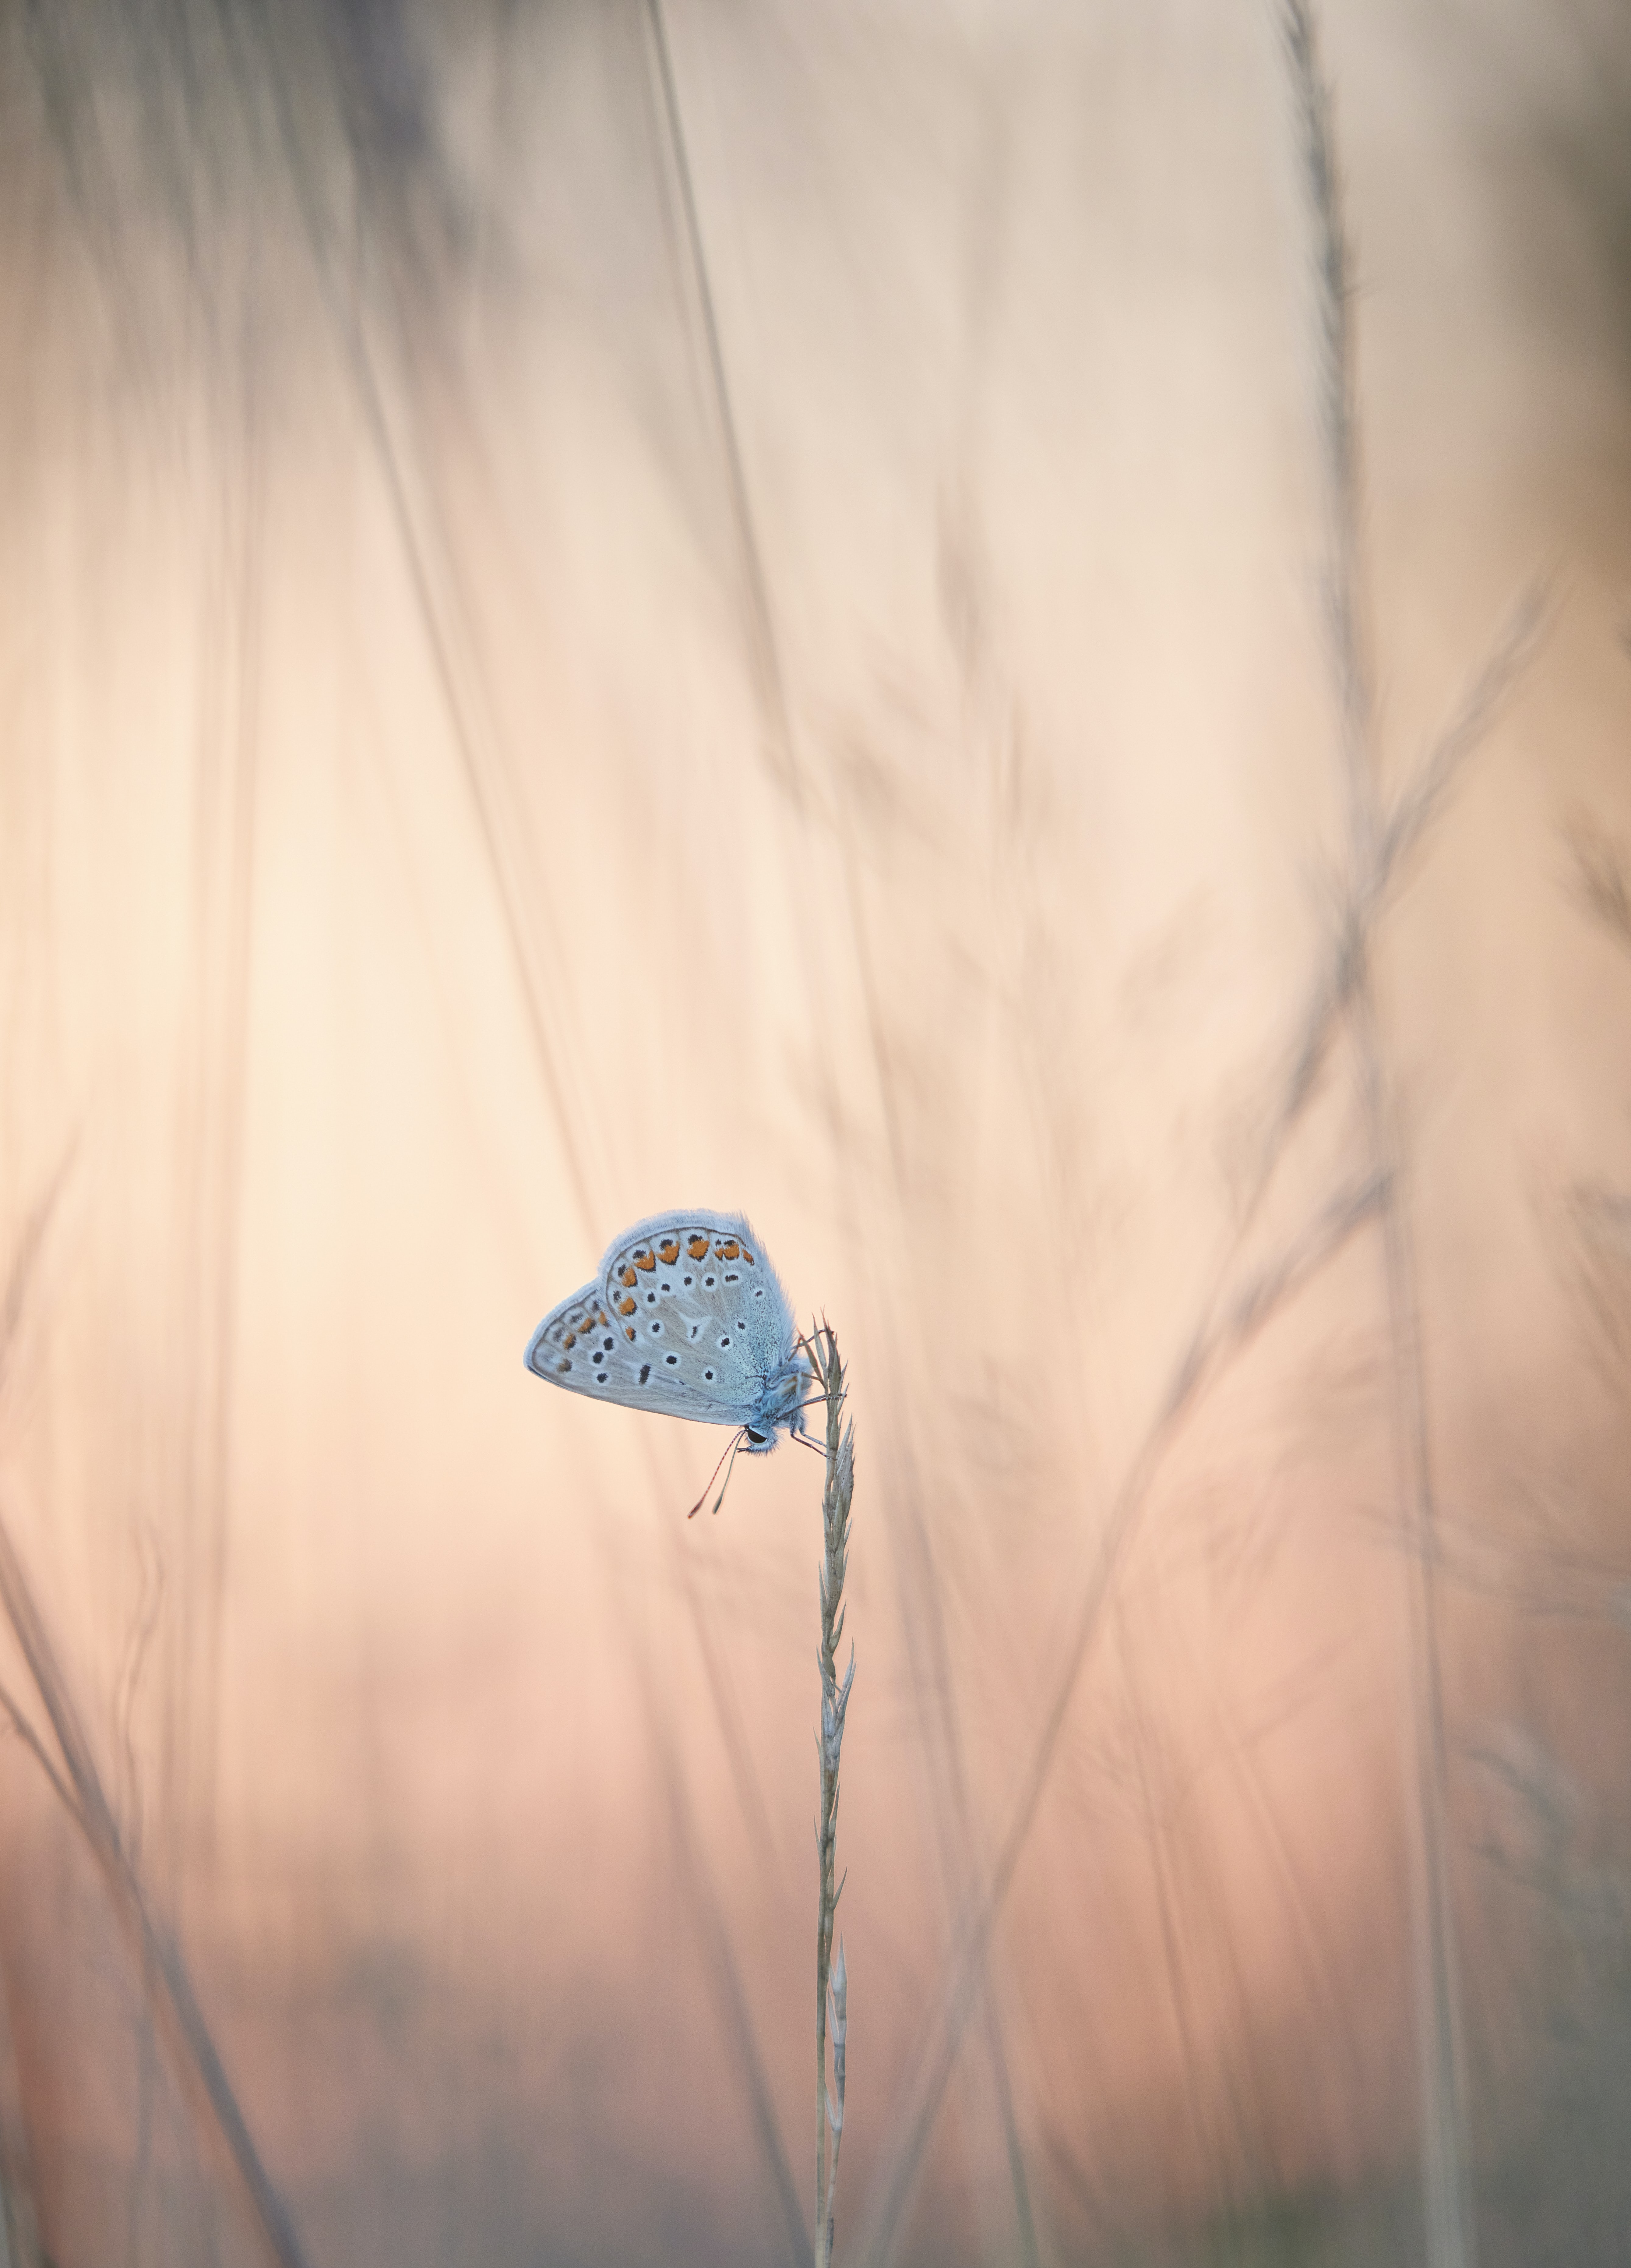 100102 download wallpaper Animals, Butterflies, Wings, Ears, Spikes, Grass screensavers and pictures for free